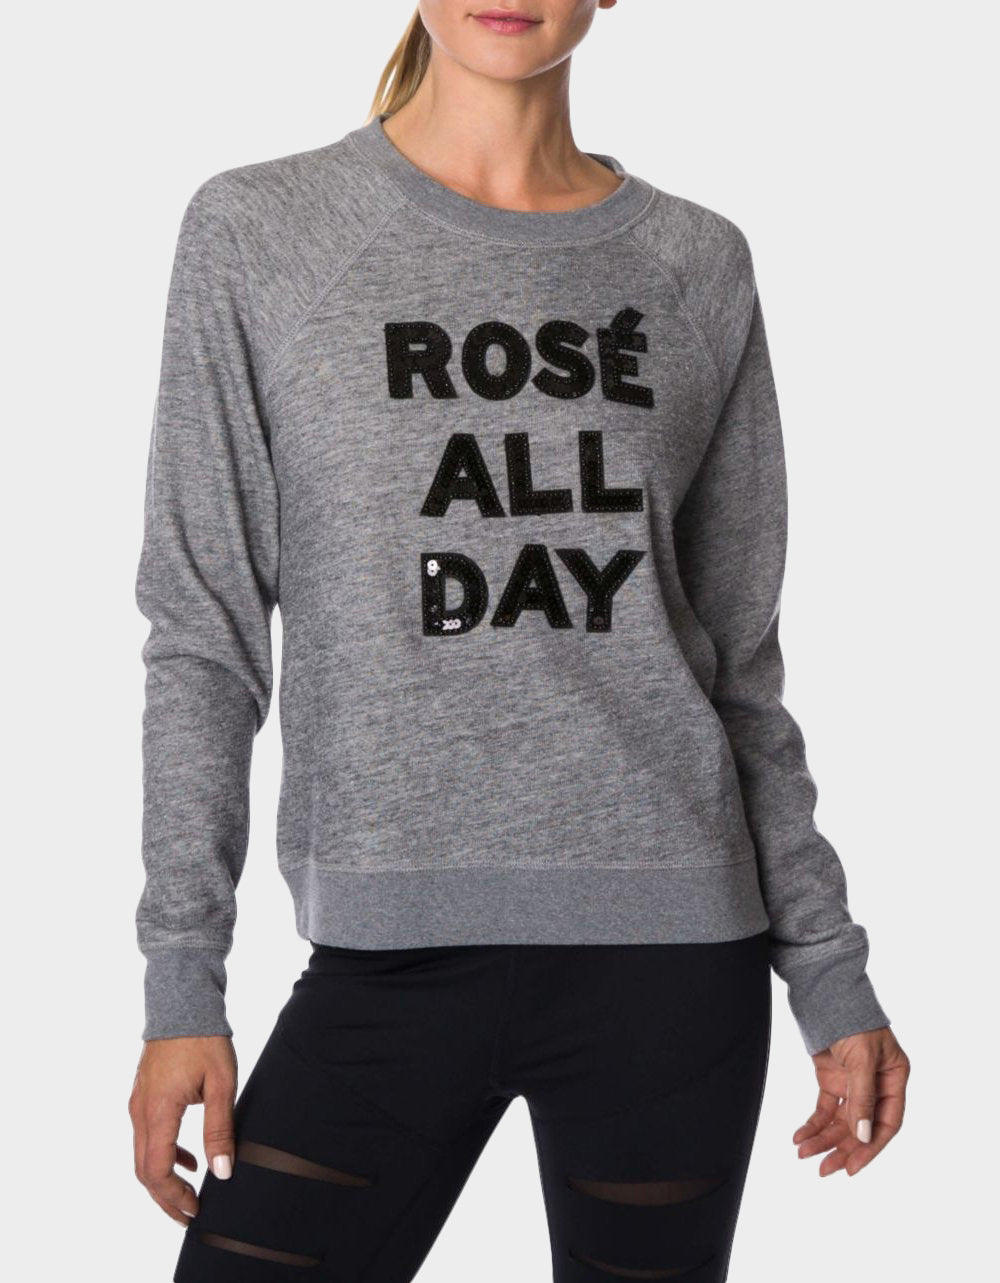 BEADED ROSE ALL DAY SWEATSHIRT CHARCOAL - APPAREL - Betsey Johnson